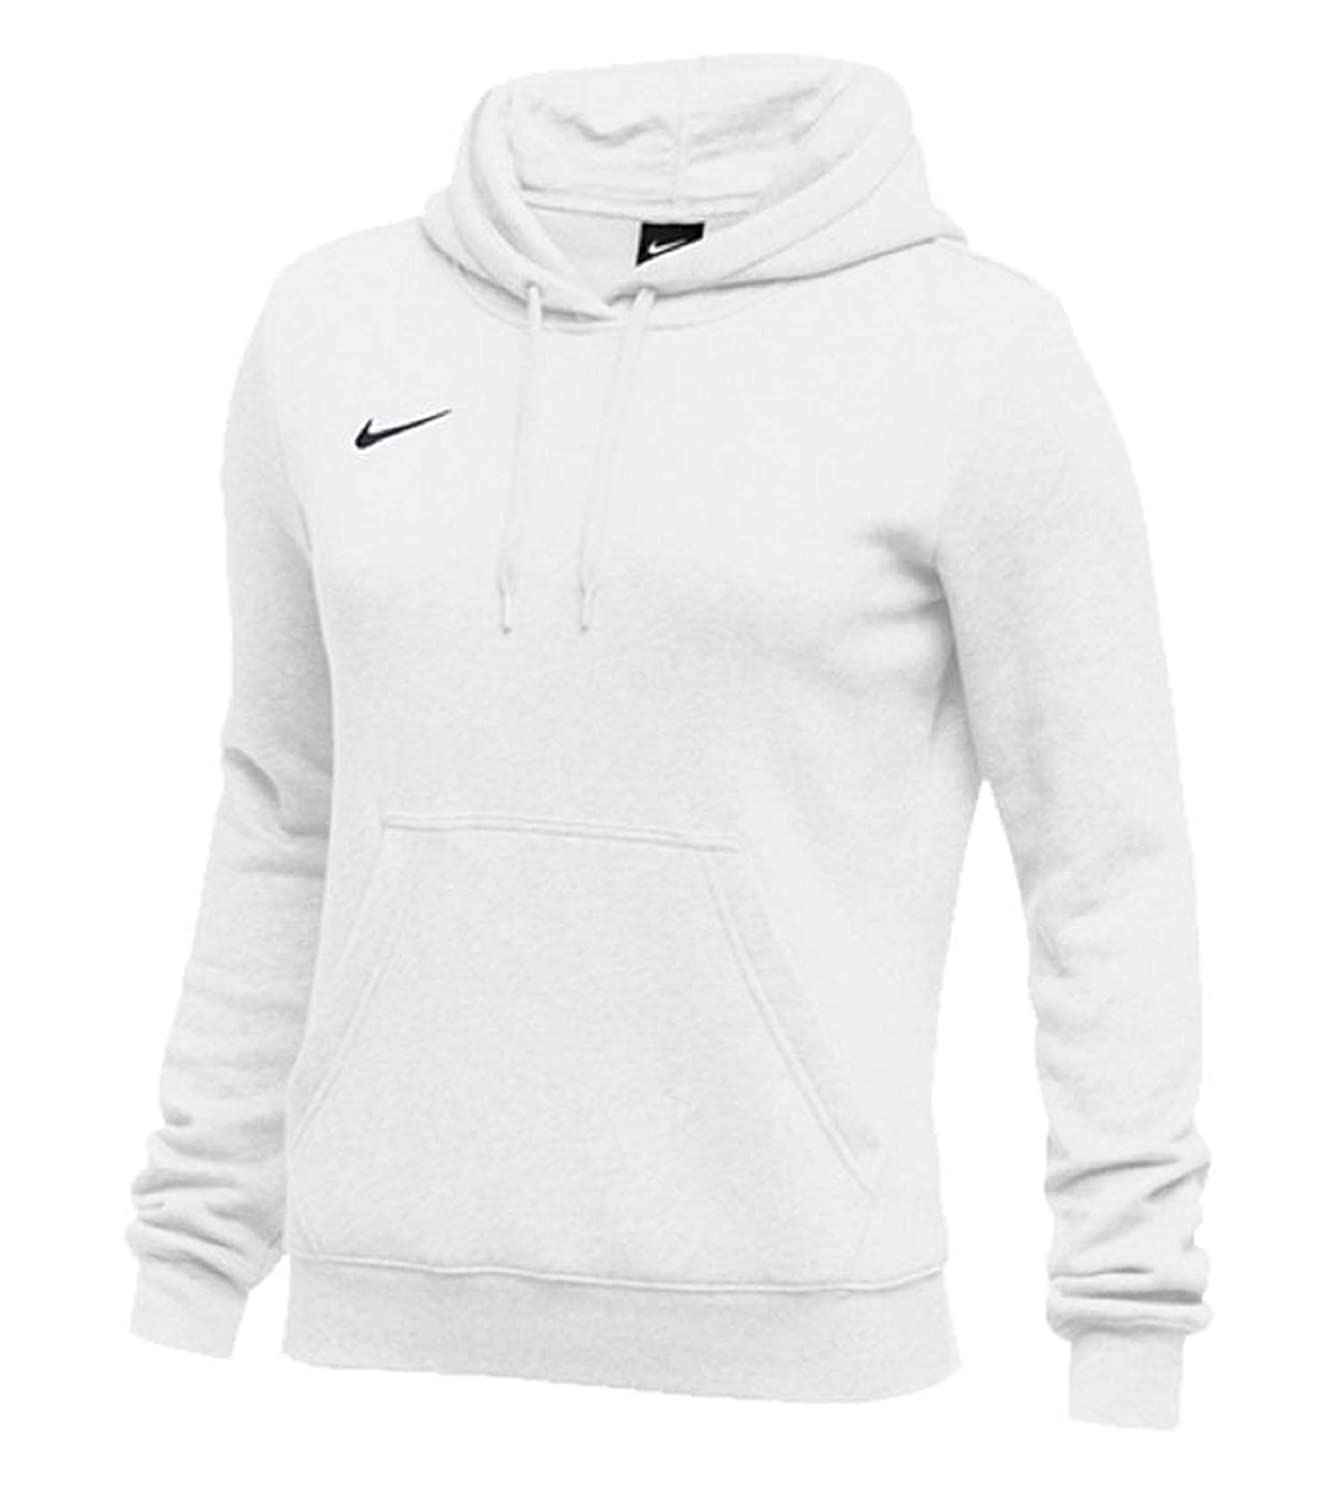 Blanc noir M Nike Sweat sweat à capuche Femme Club Fleece